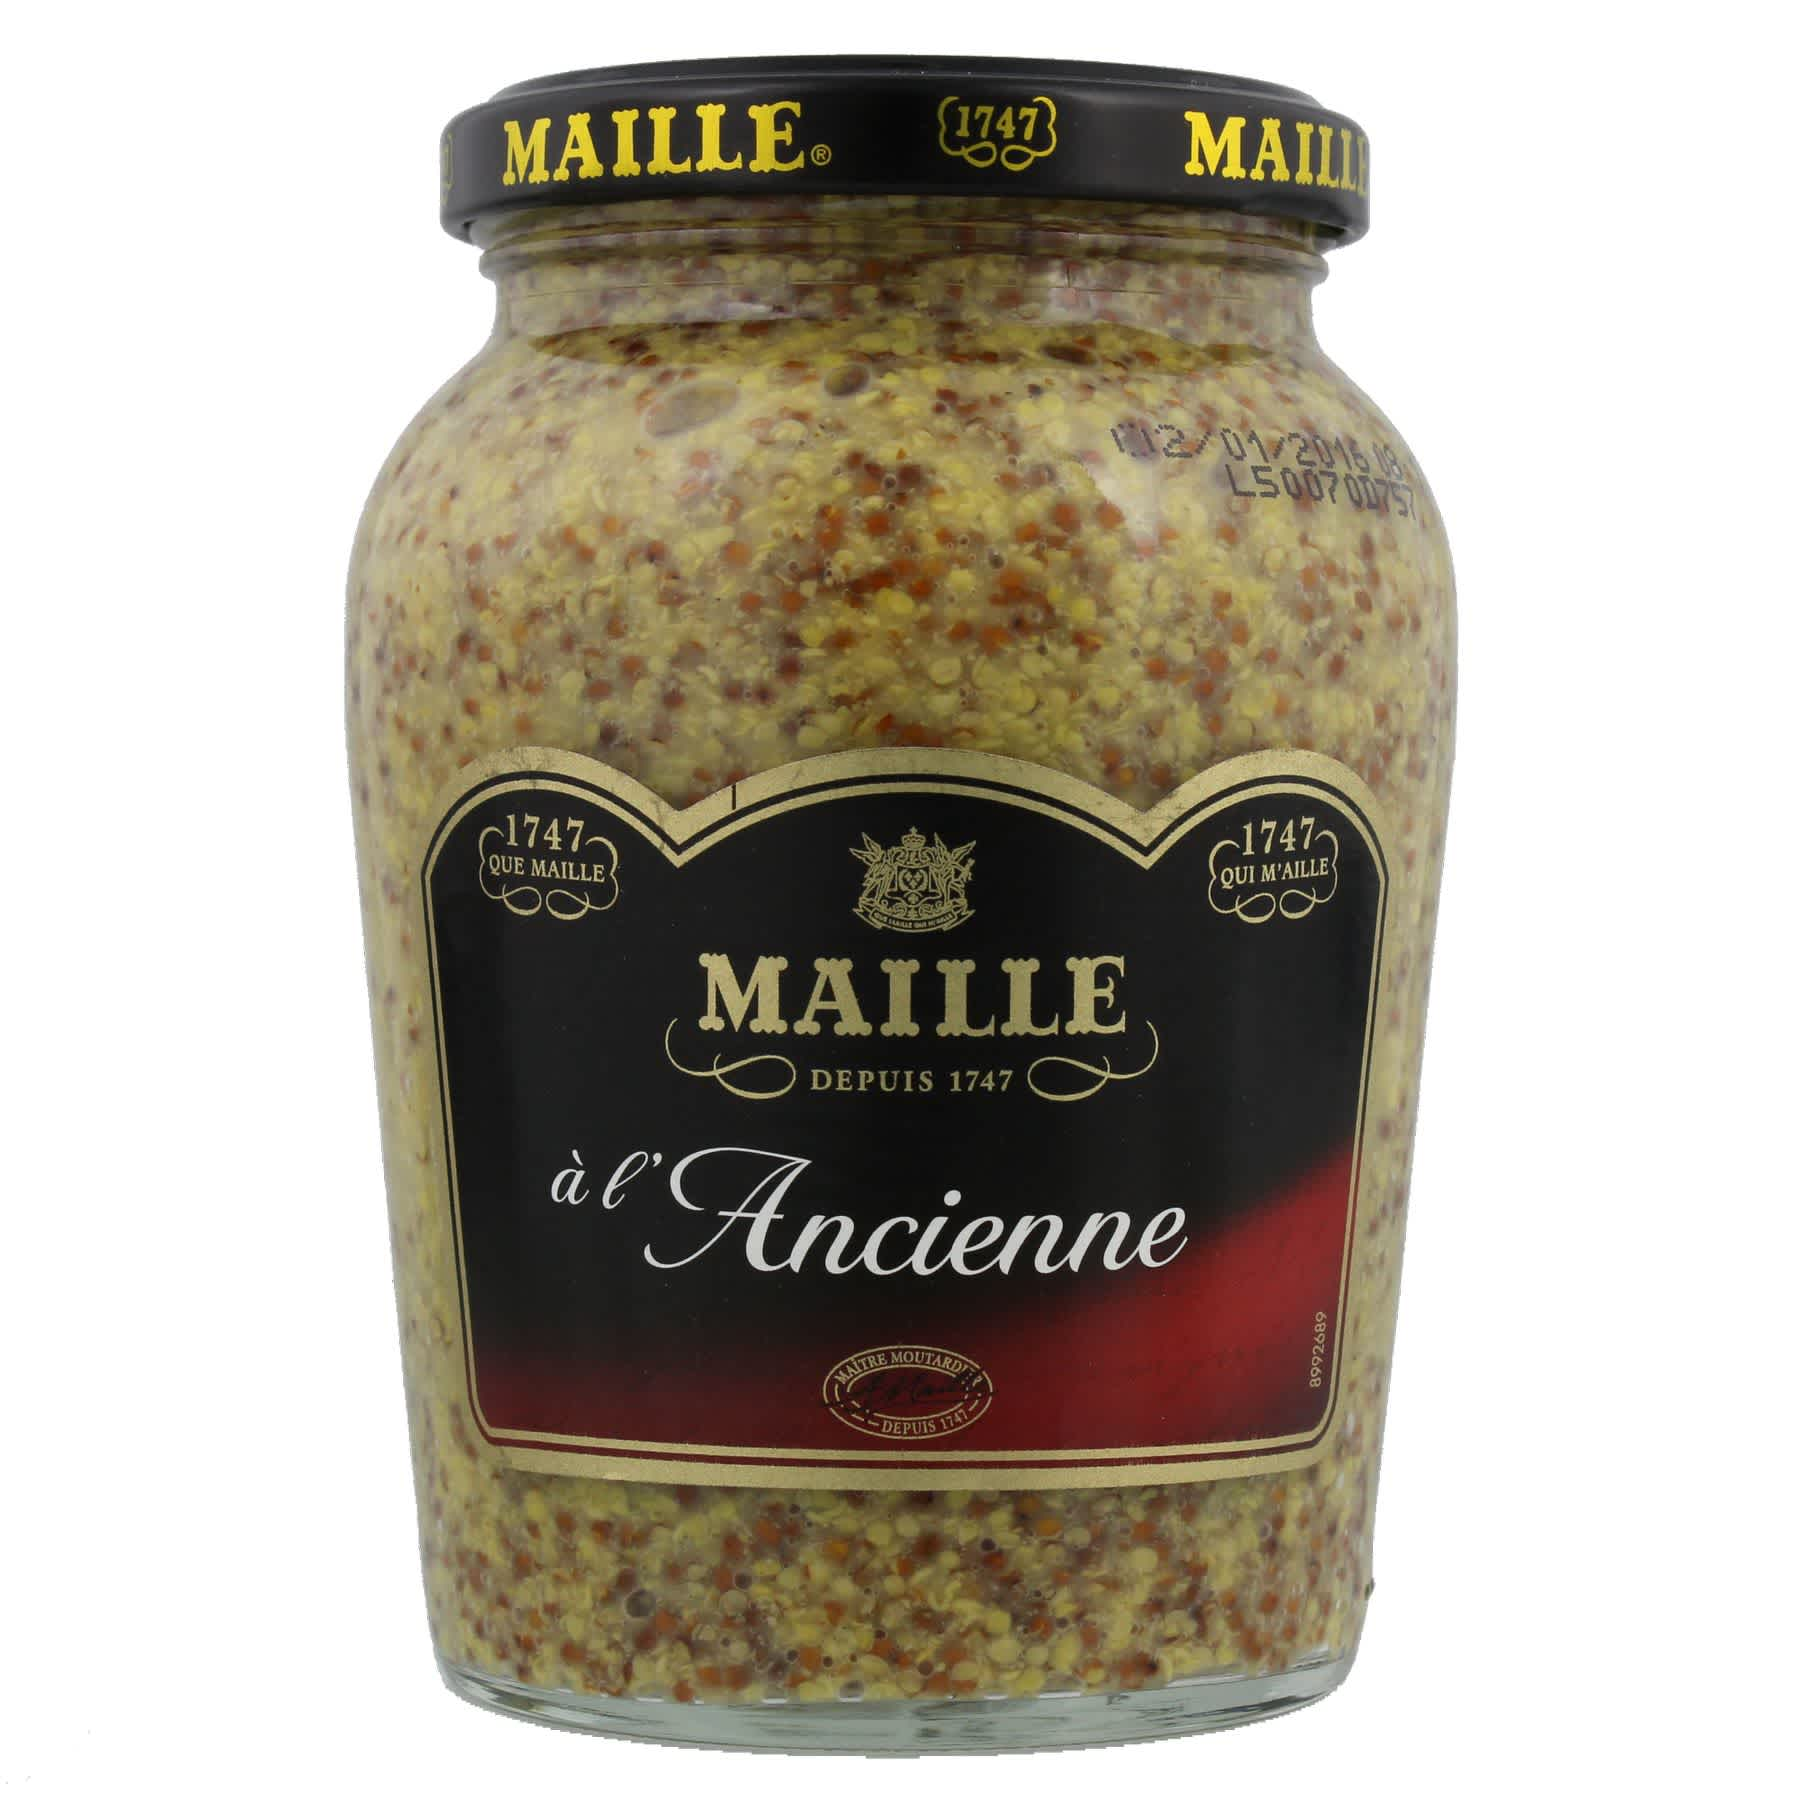 Maille - Moutarde à l'Ancienne Bocal 380 g, overview